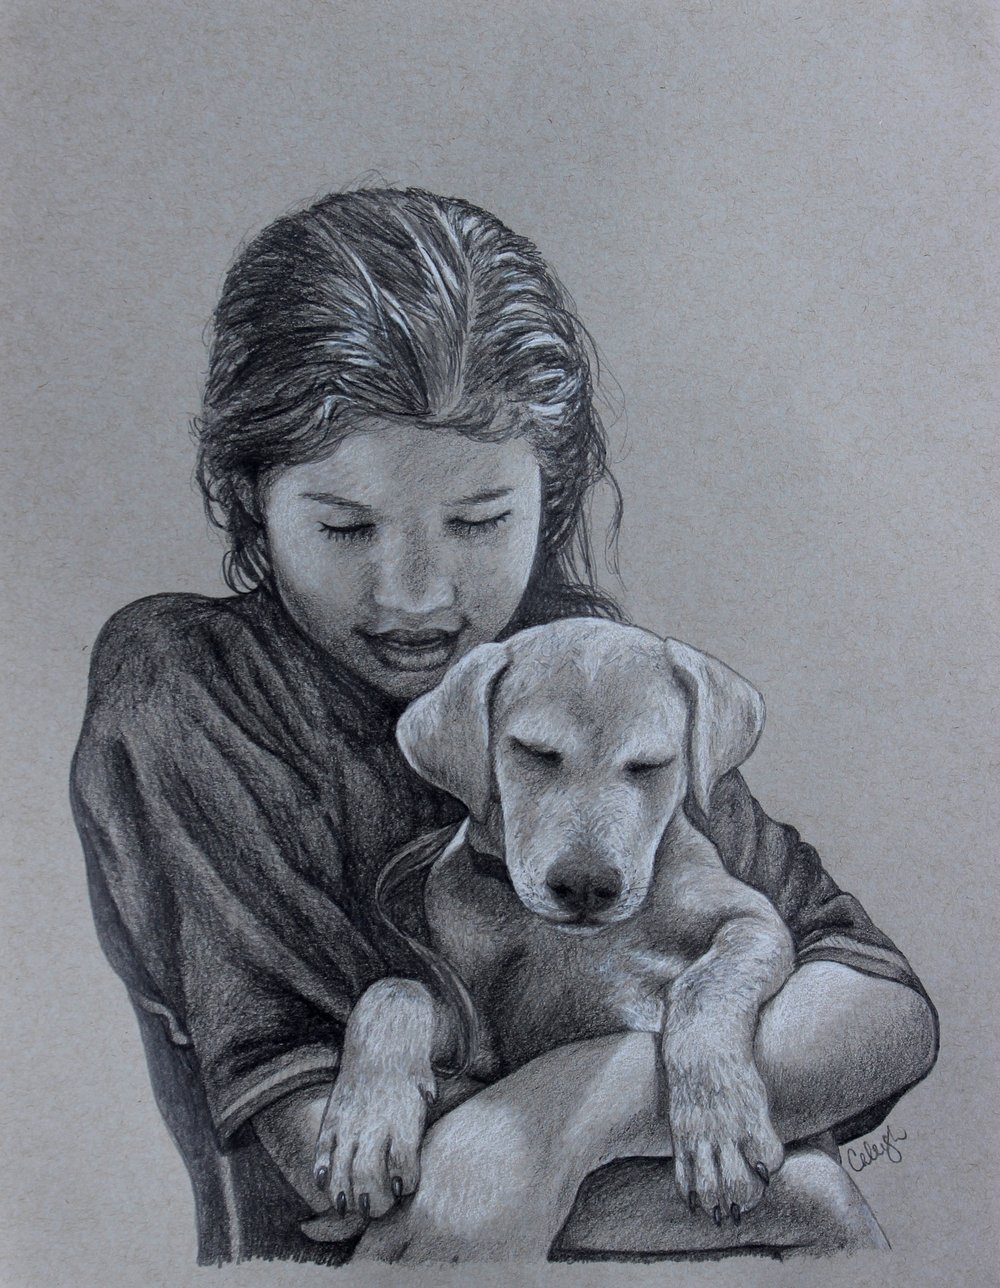 adorable dog drawing in pencil with a cute girl